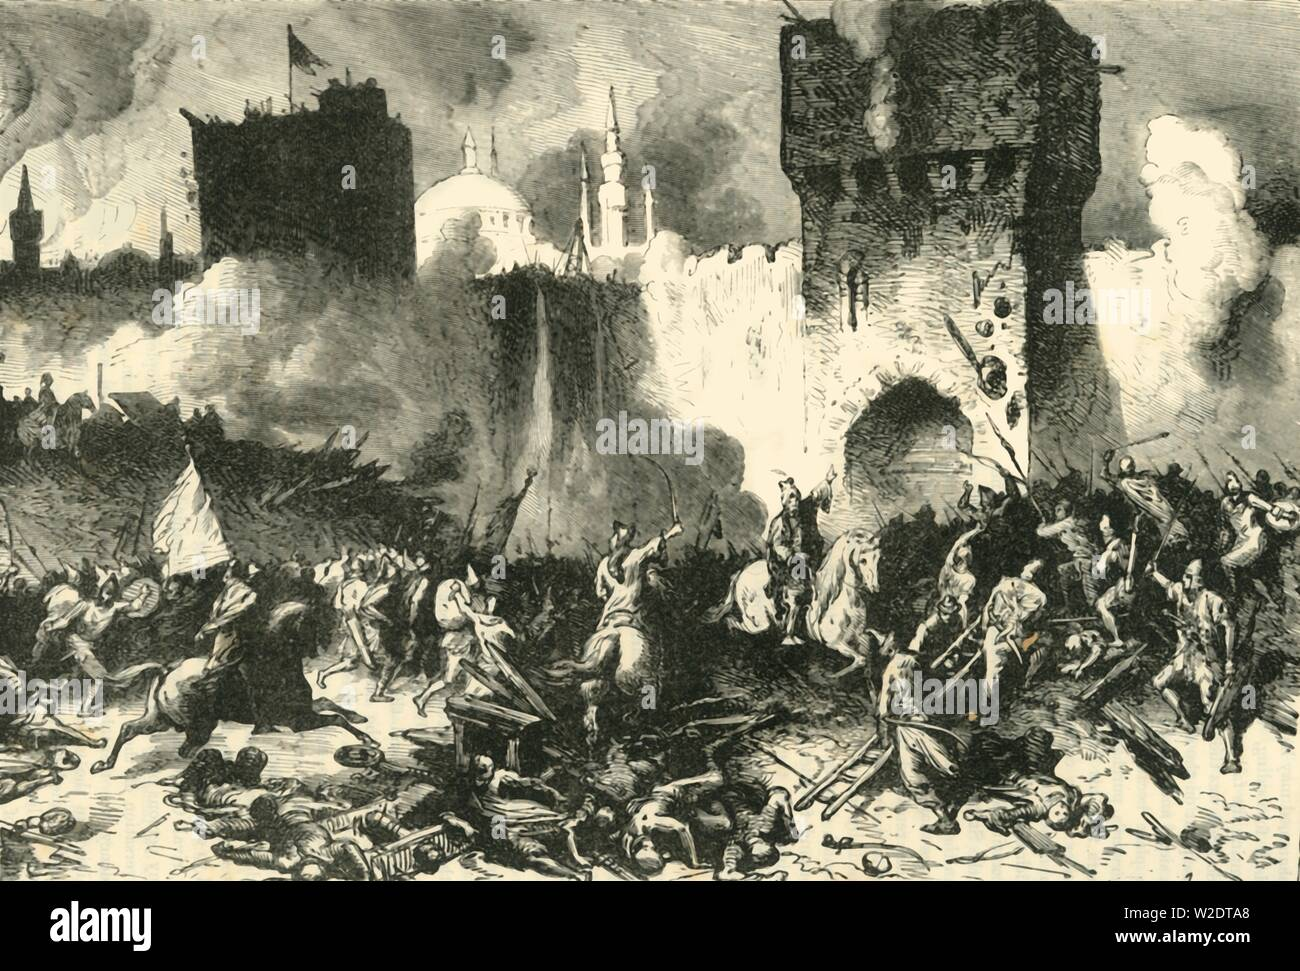 """'The Final Assault on Constantinople', (29 May 1453), 1890. The Fall of Constantinople - capture of the Byzantine Empire's capital under Constantine XI Palaiologos by an invading Ottoman army under Sultan Mehmed II, on 29 May 1453.   From """"Cassell's Illustrated Universal History, Vol. III - The Middle Ages"""", by Edmund Ollier. [Cassell and Company, Limited, London, Paris and Melbourne, 1890. ] - Stock Image"""